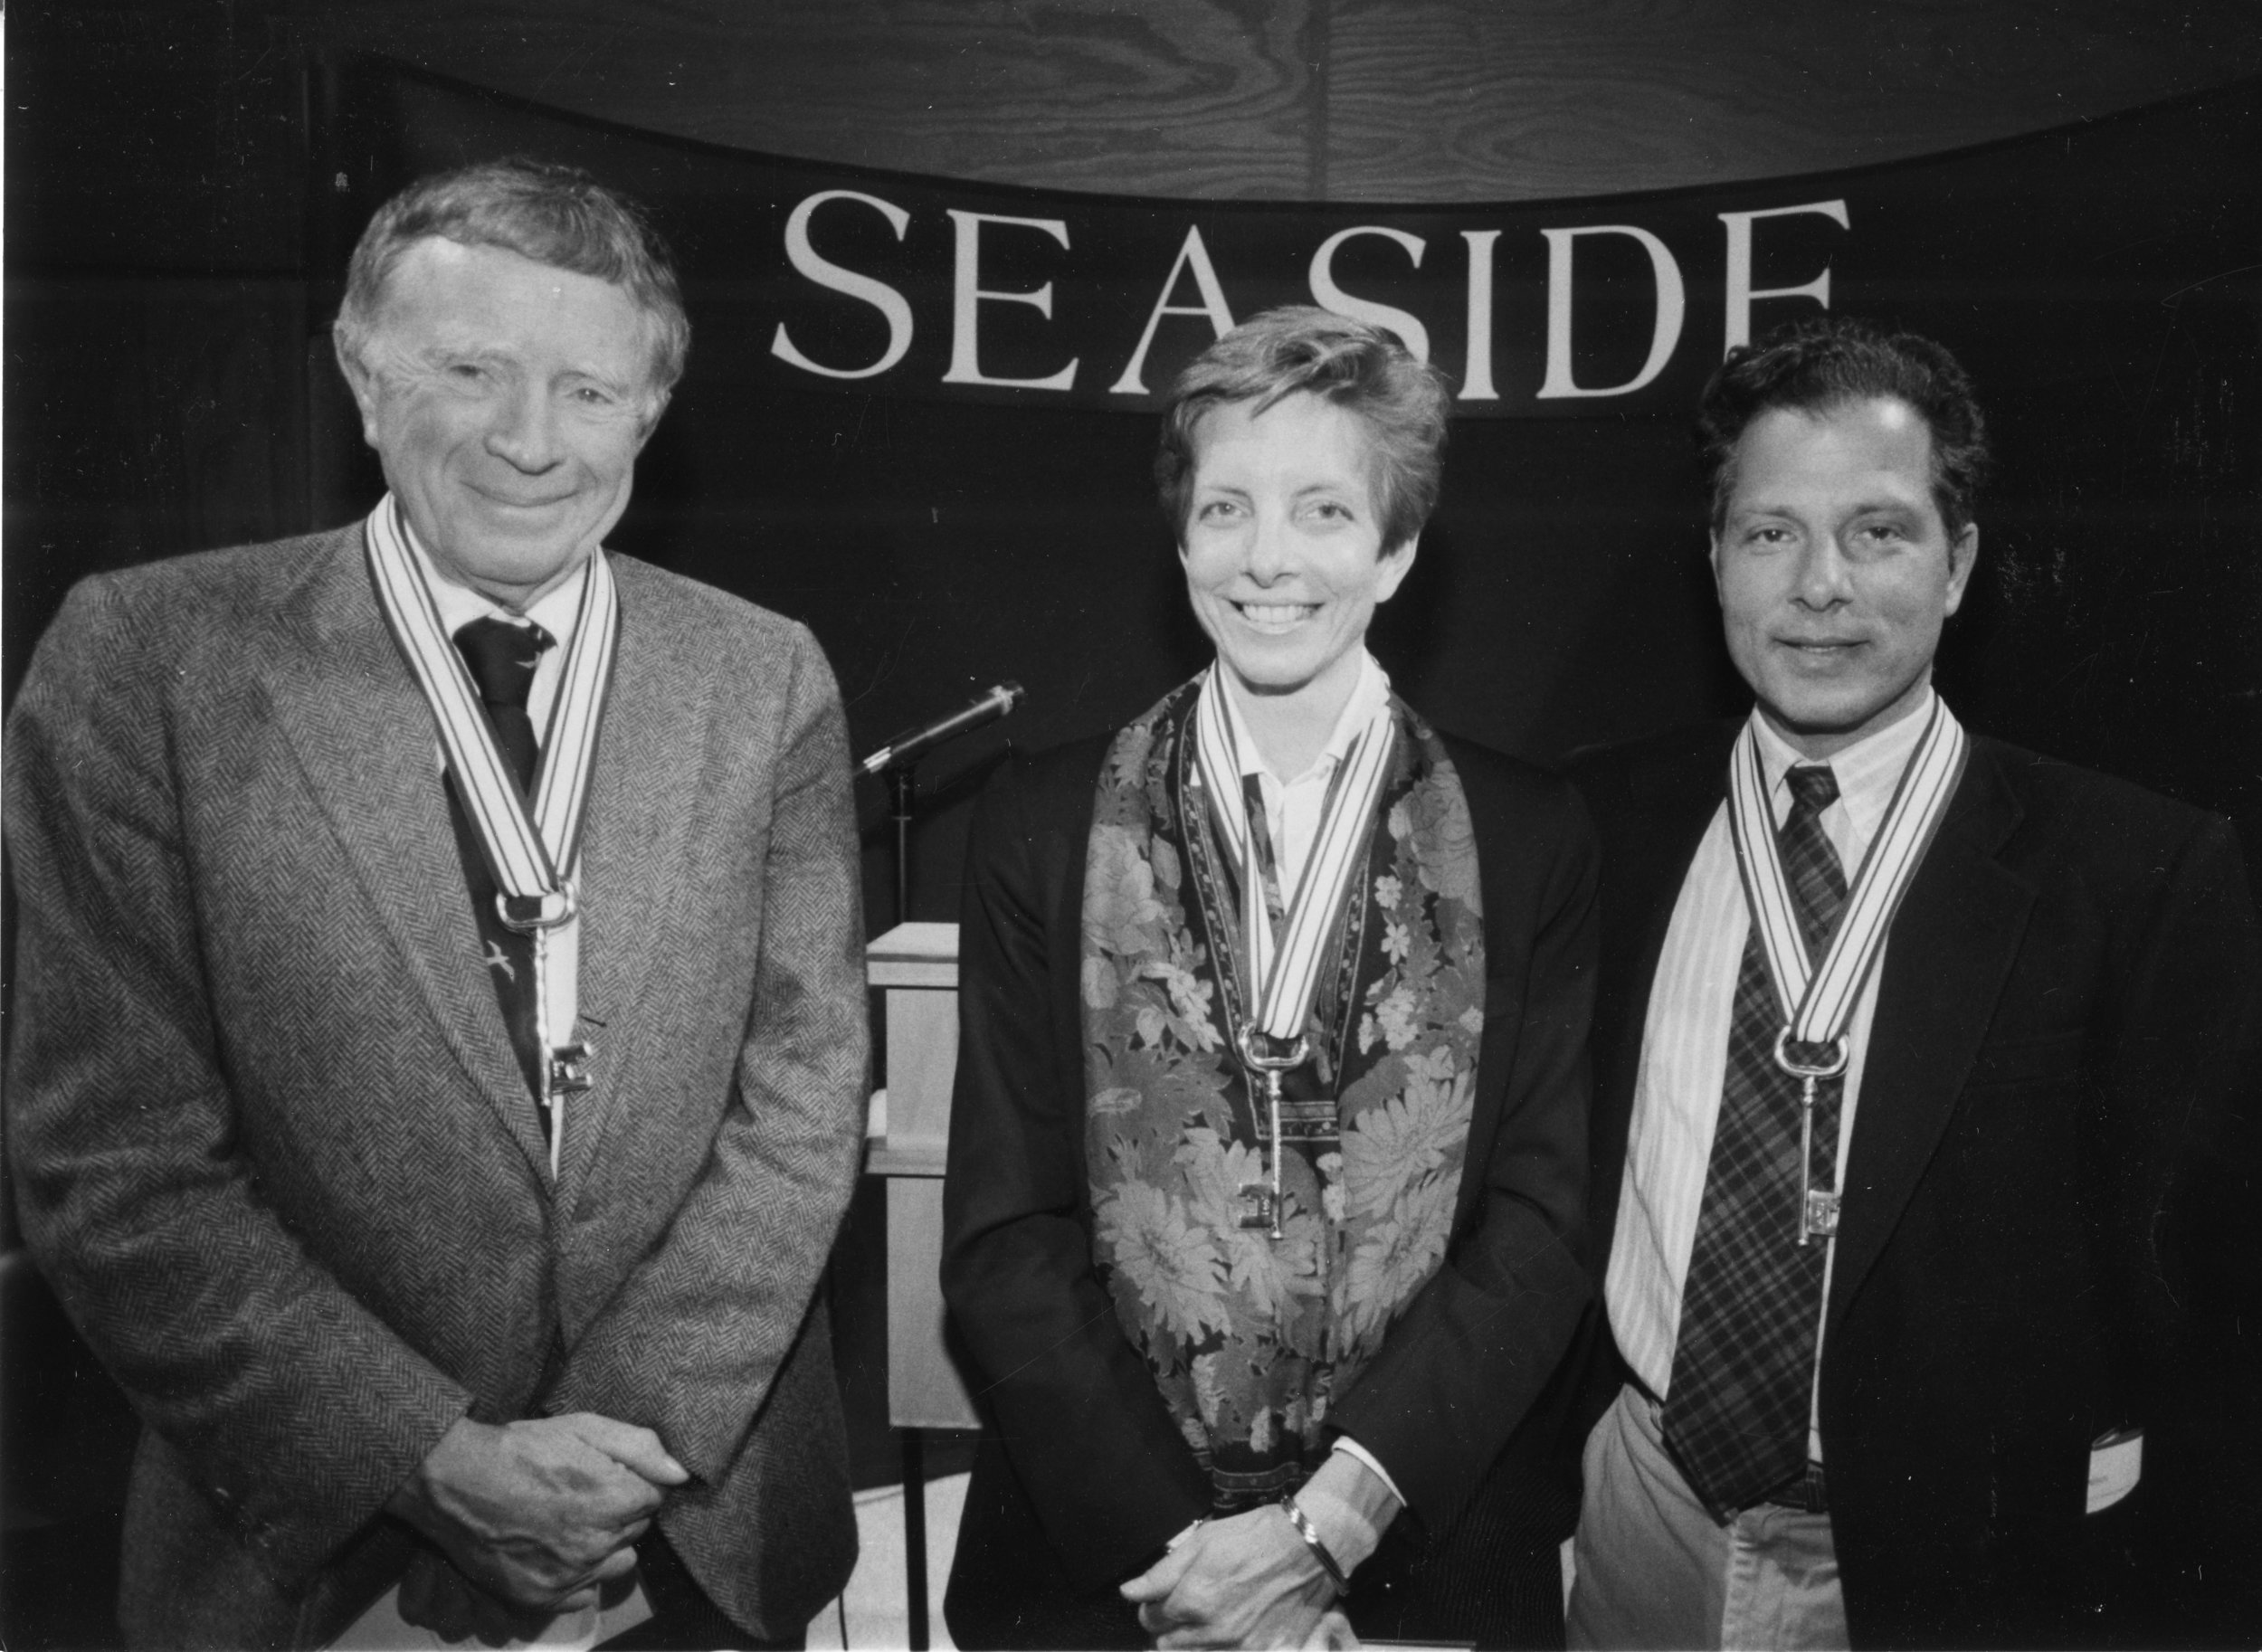 The First Seaside Prize Winners